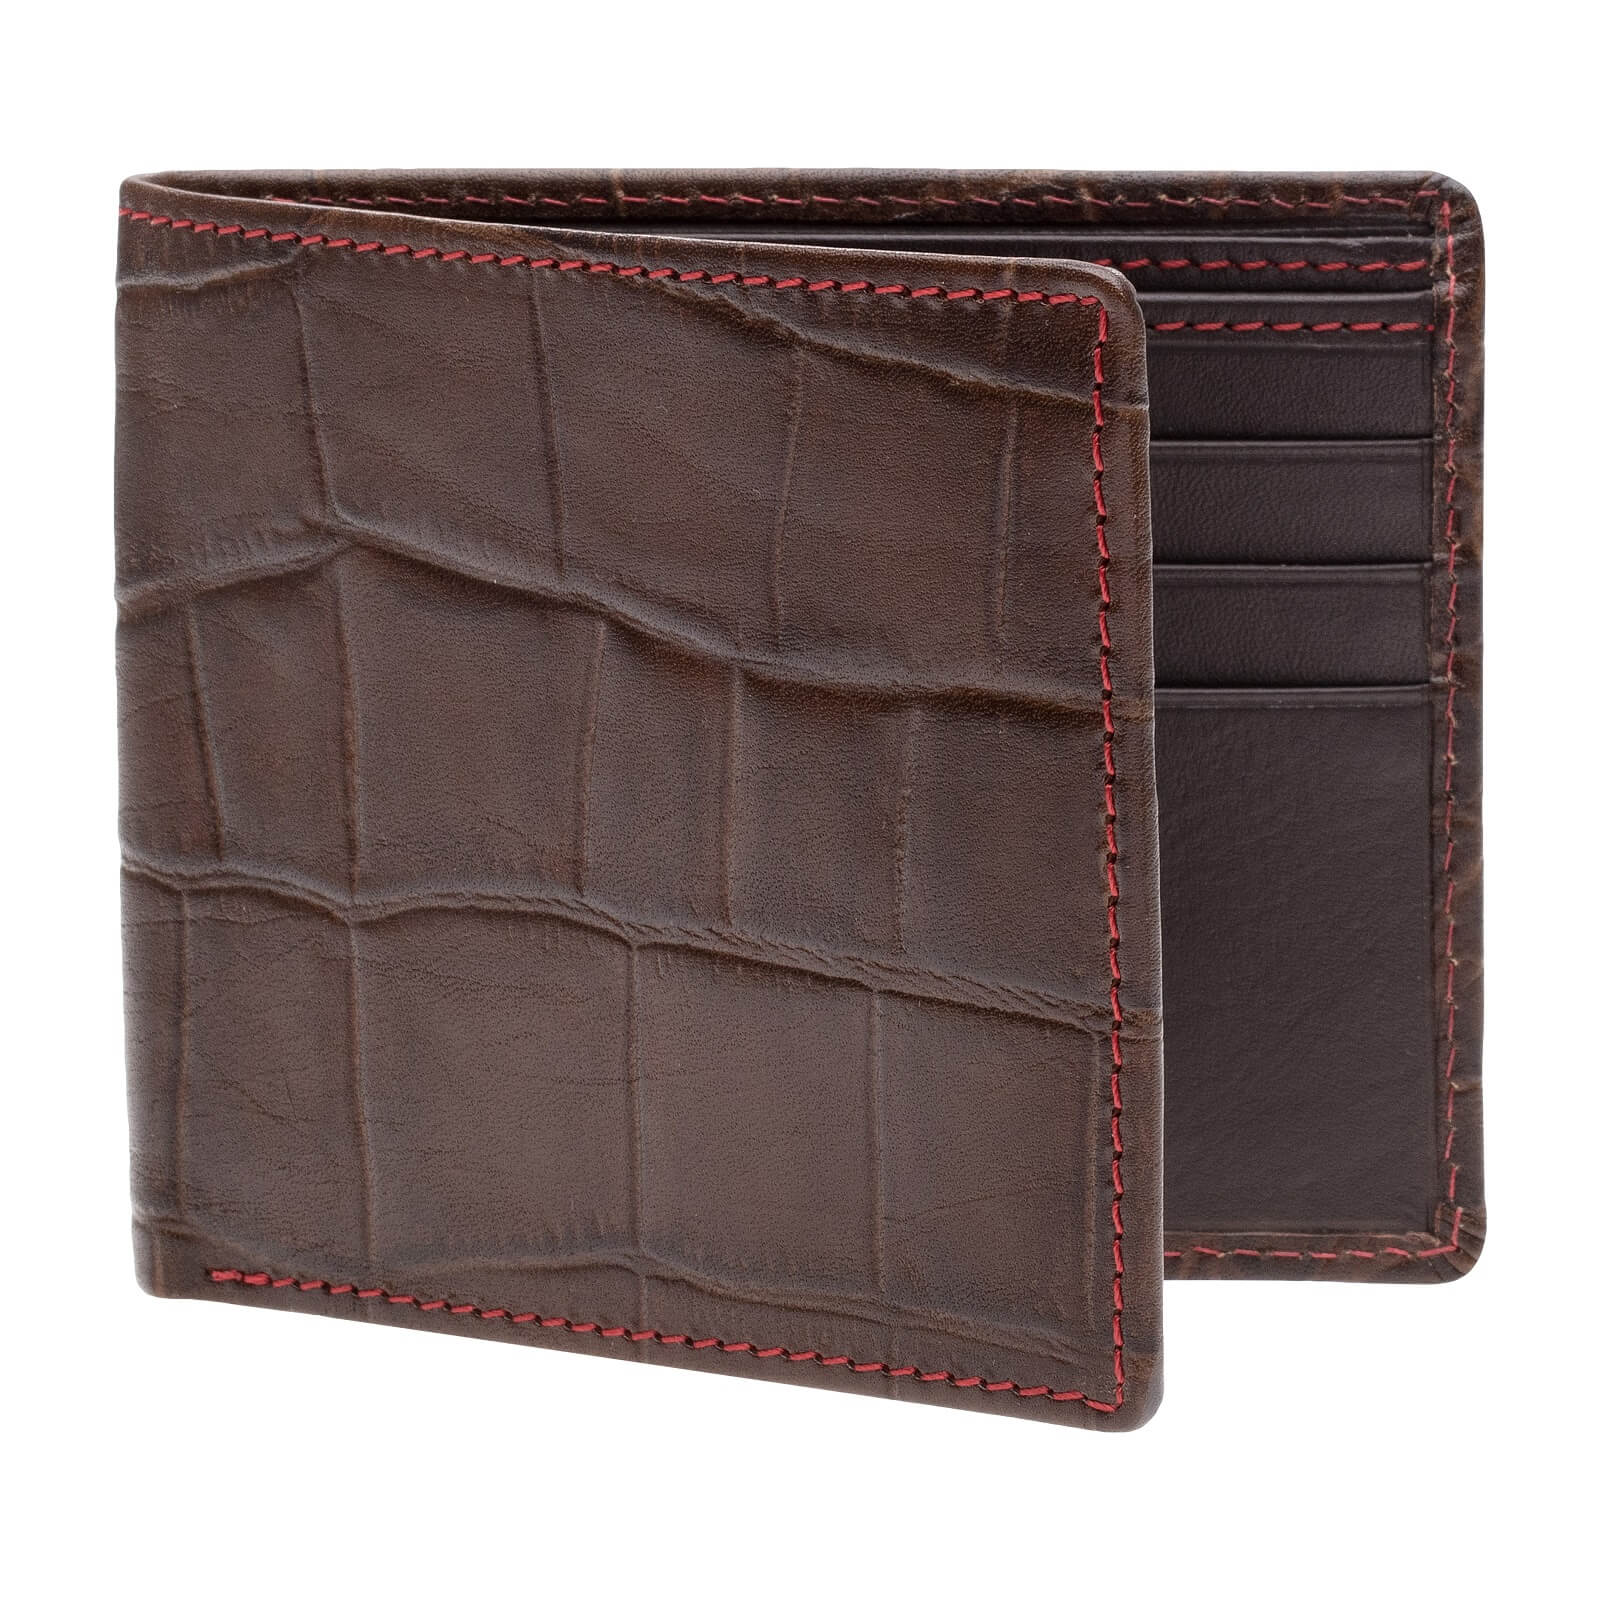 Bark Mock Gator Vegetable tan Leather Wallet - Red / Brown / One Size | Mens Fashion & Leather Goods by Roger Ximenez